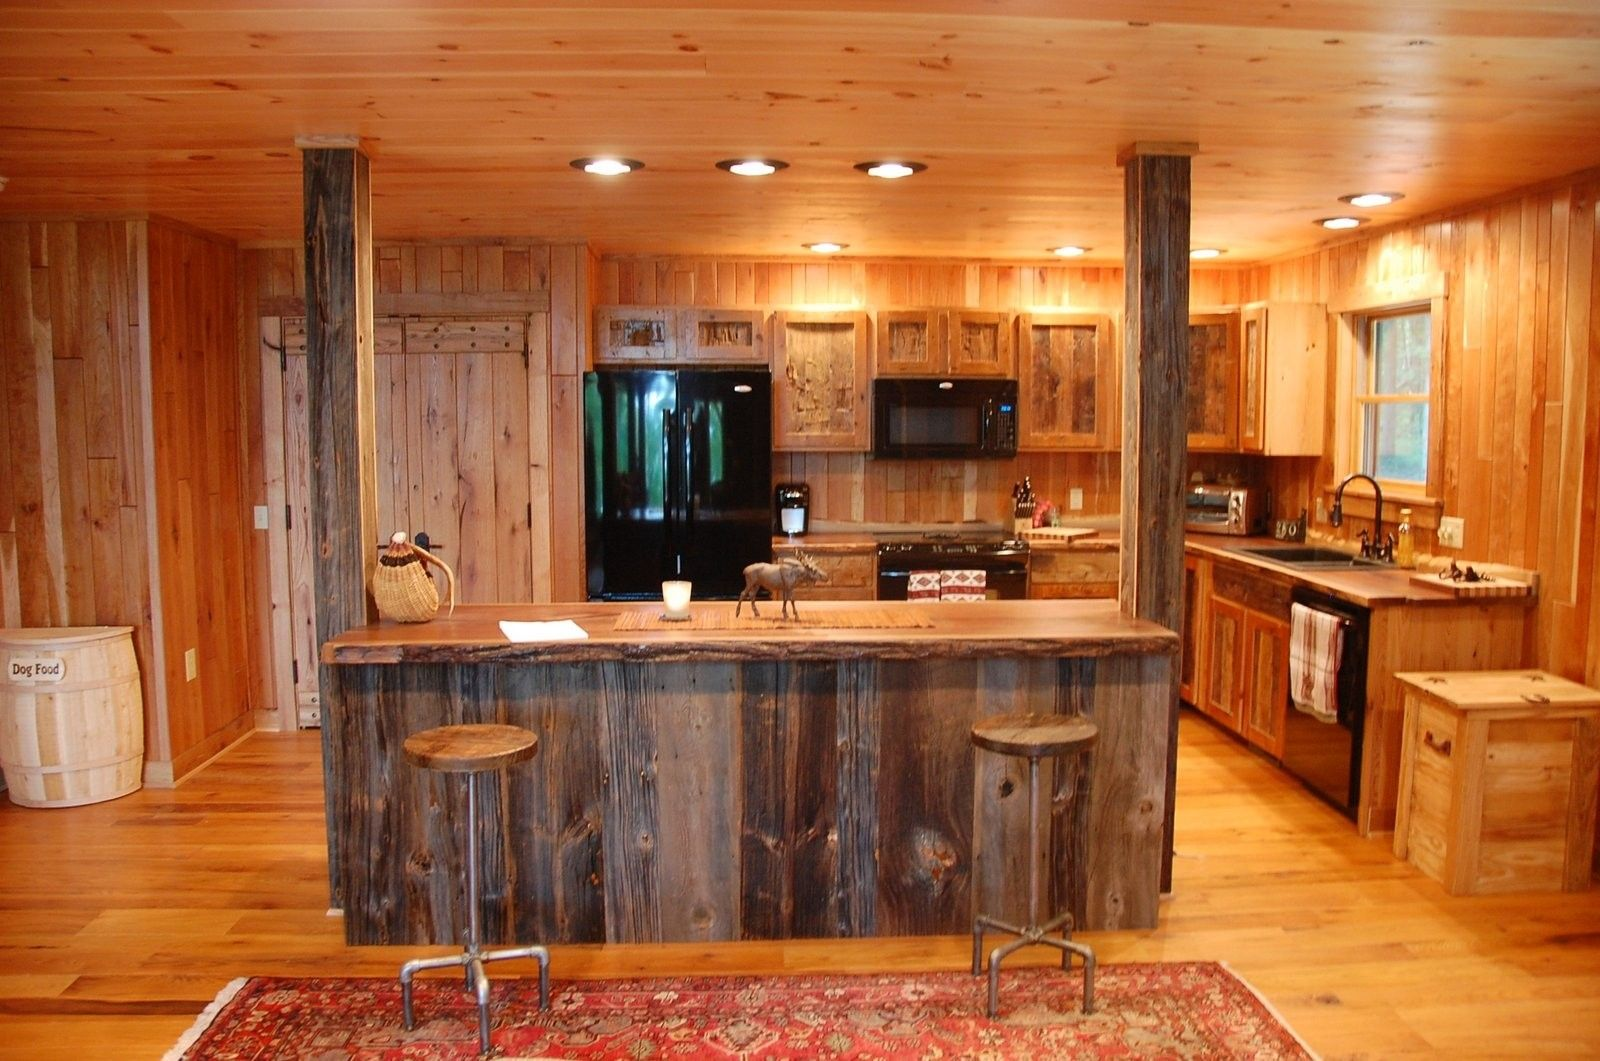 custom rustic kitchen cabinets. Custom Made Reclaimed Wood Rustic Kitchen Cabinets by Corey Morgan